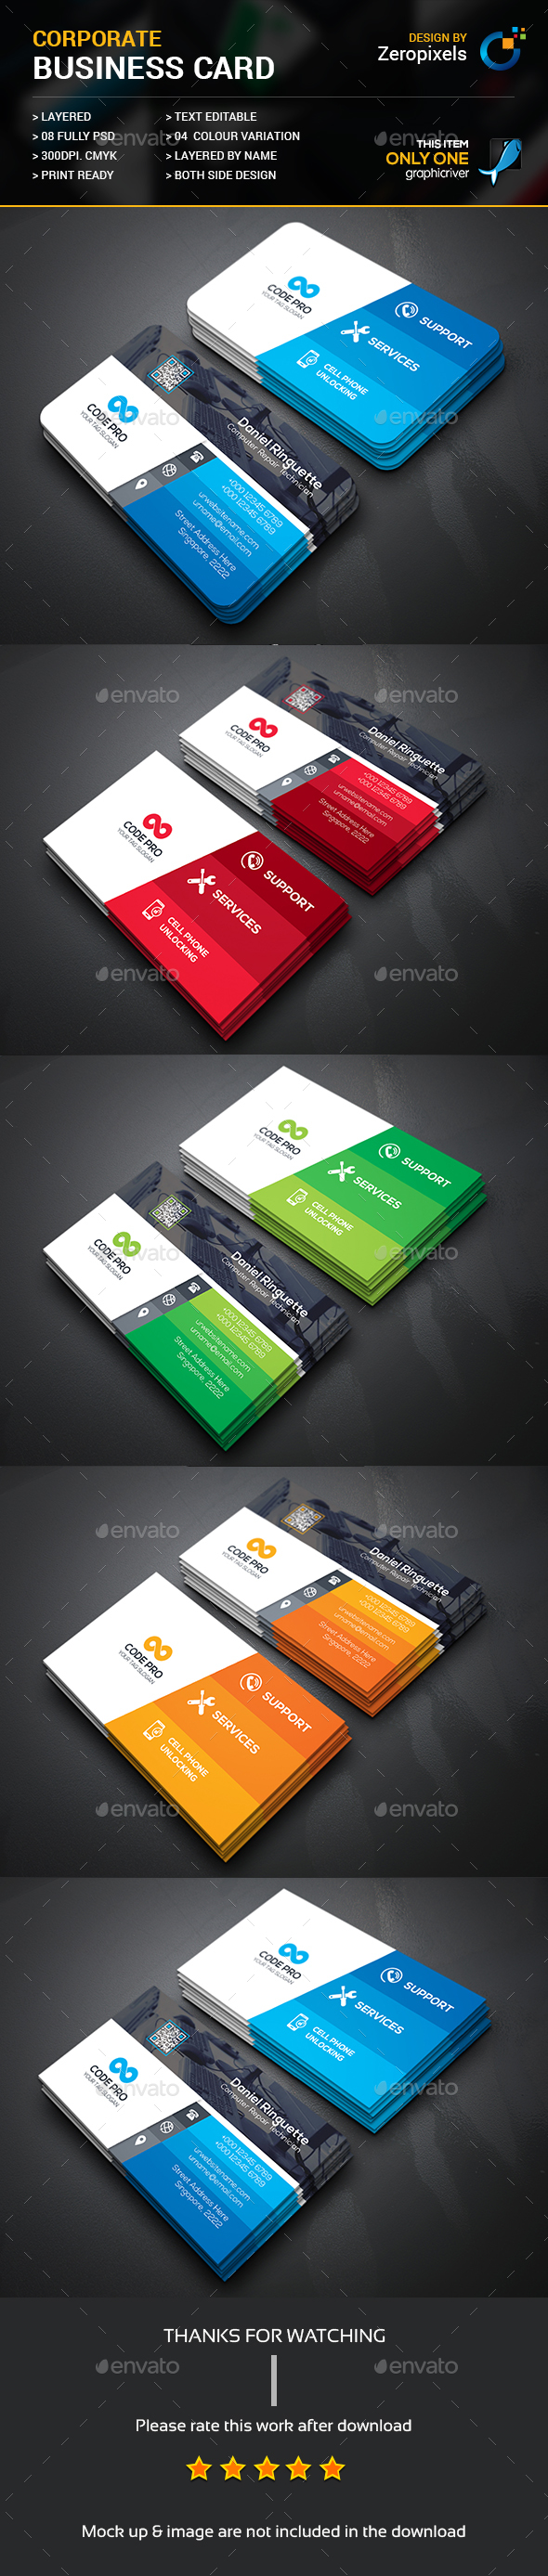 Medical Business Card Template PSD Business Credit Card - Buy business card template